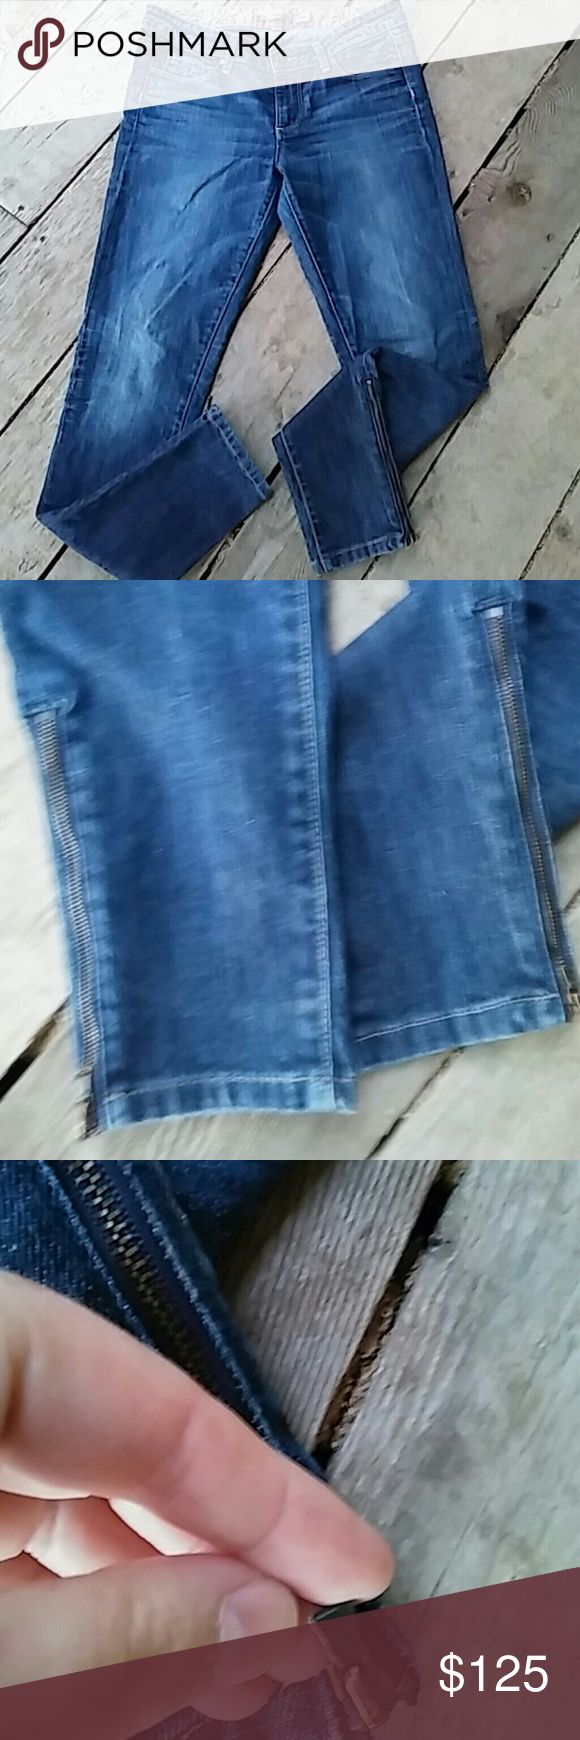 Paige Premium Denim Skyline Skinny Paige Premium Denim Skyline Skinny Has a zipper on each ankle On of the zipper broke in half (pictured) They both still zip Size 28 Paige Jeans Jeans Skinny